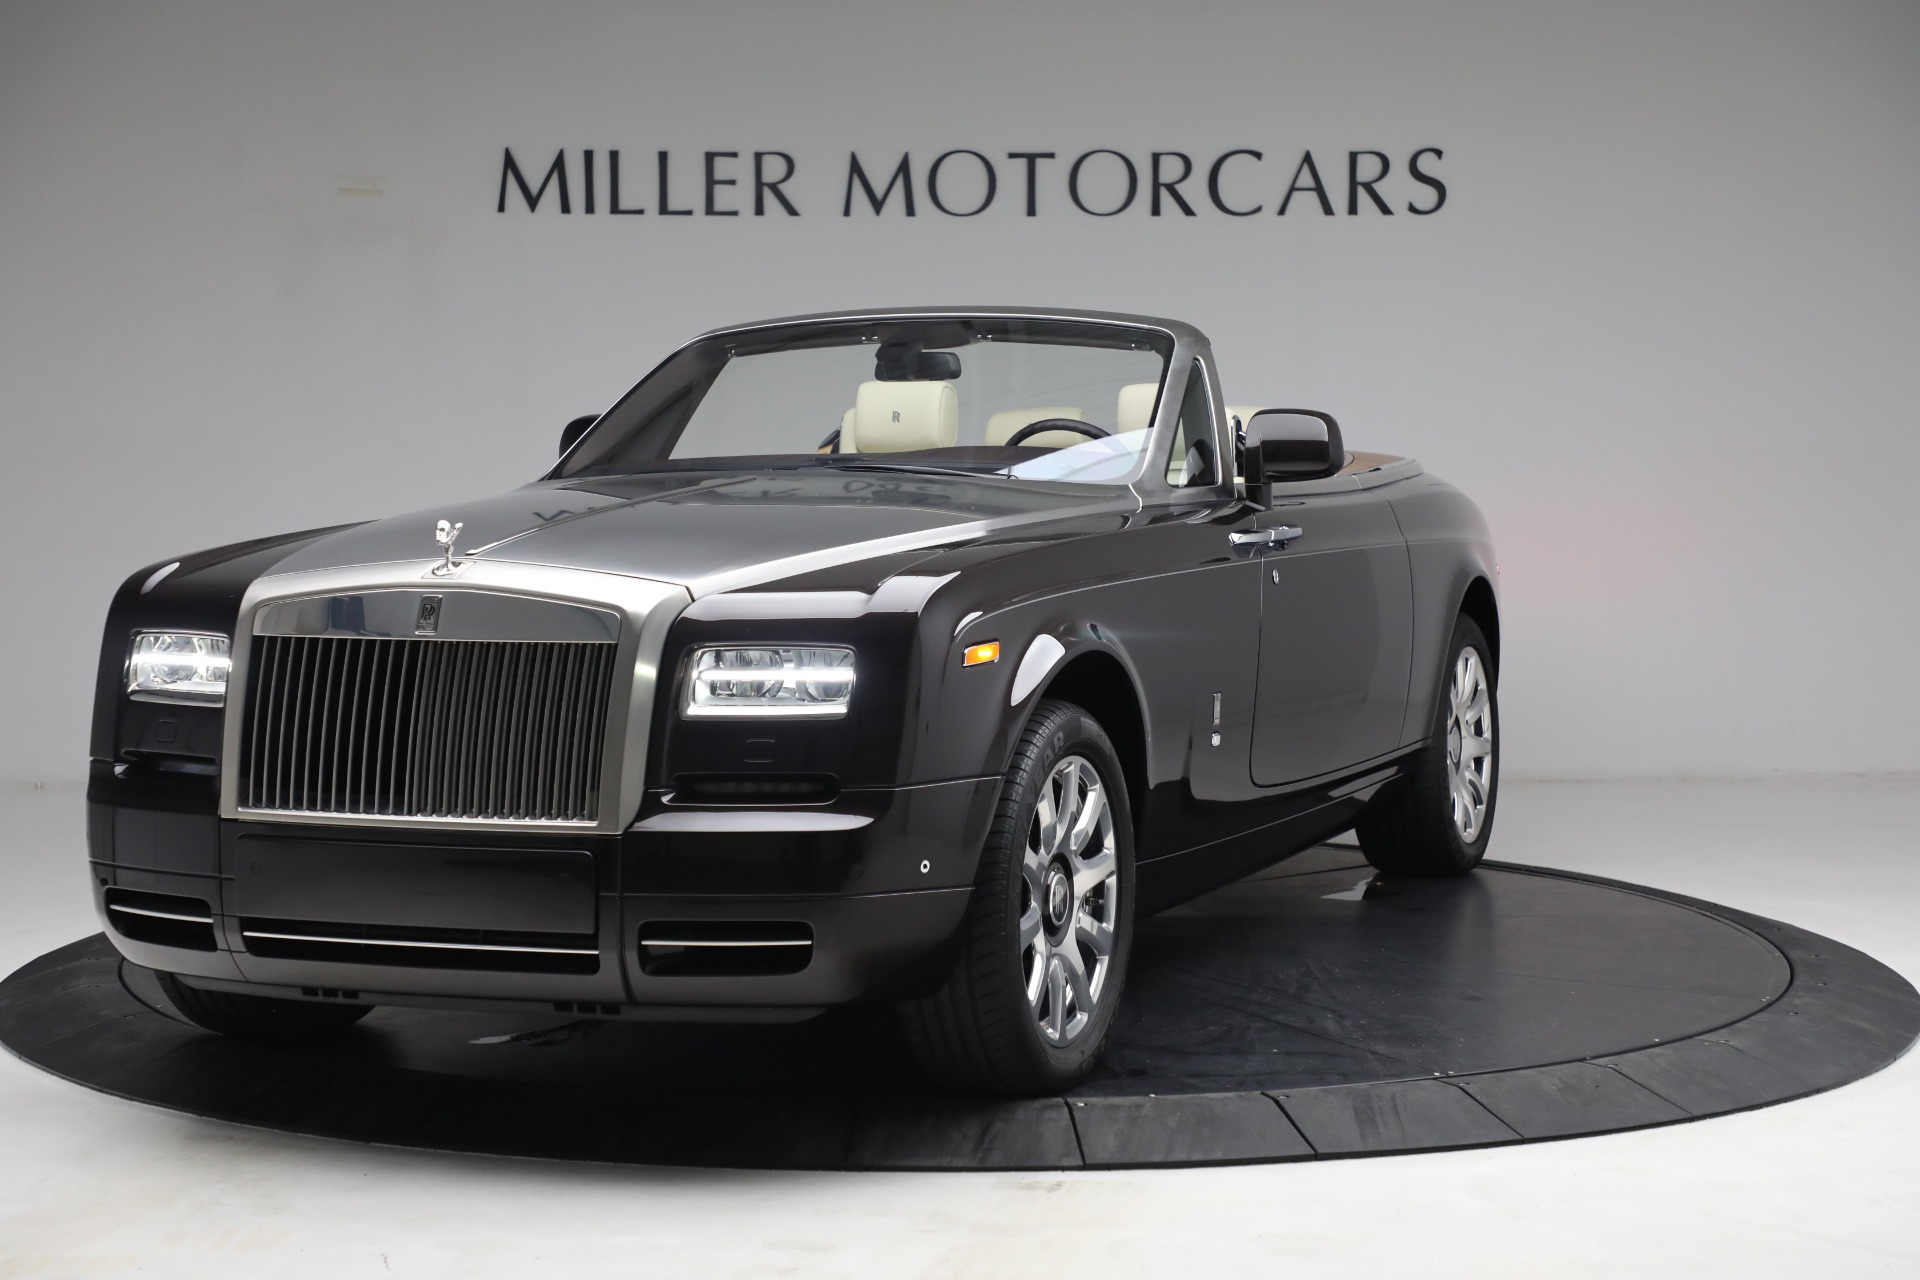 Used 2015 Rolls-Royce Phantom Drophead Coupe for sale Call for price at Rolls-Royce Motor Cars Greenwich in Greenwich CT 06830 1